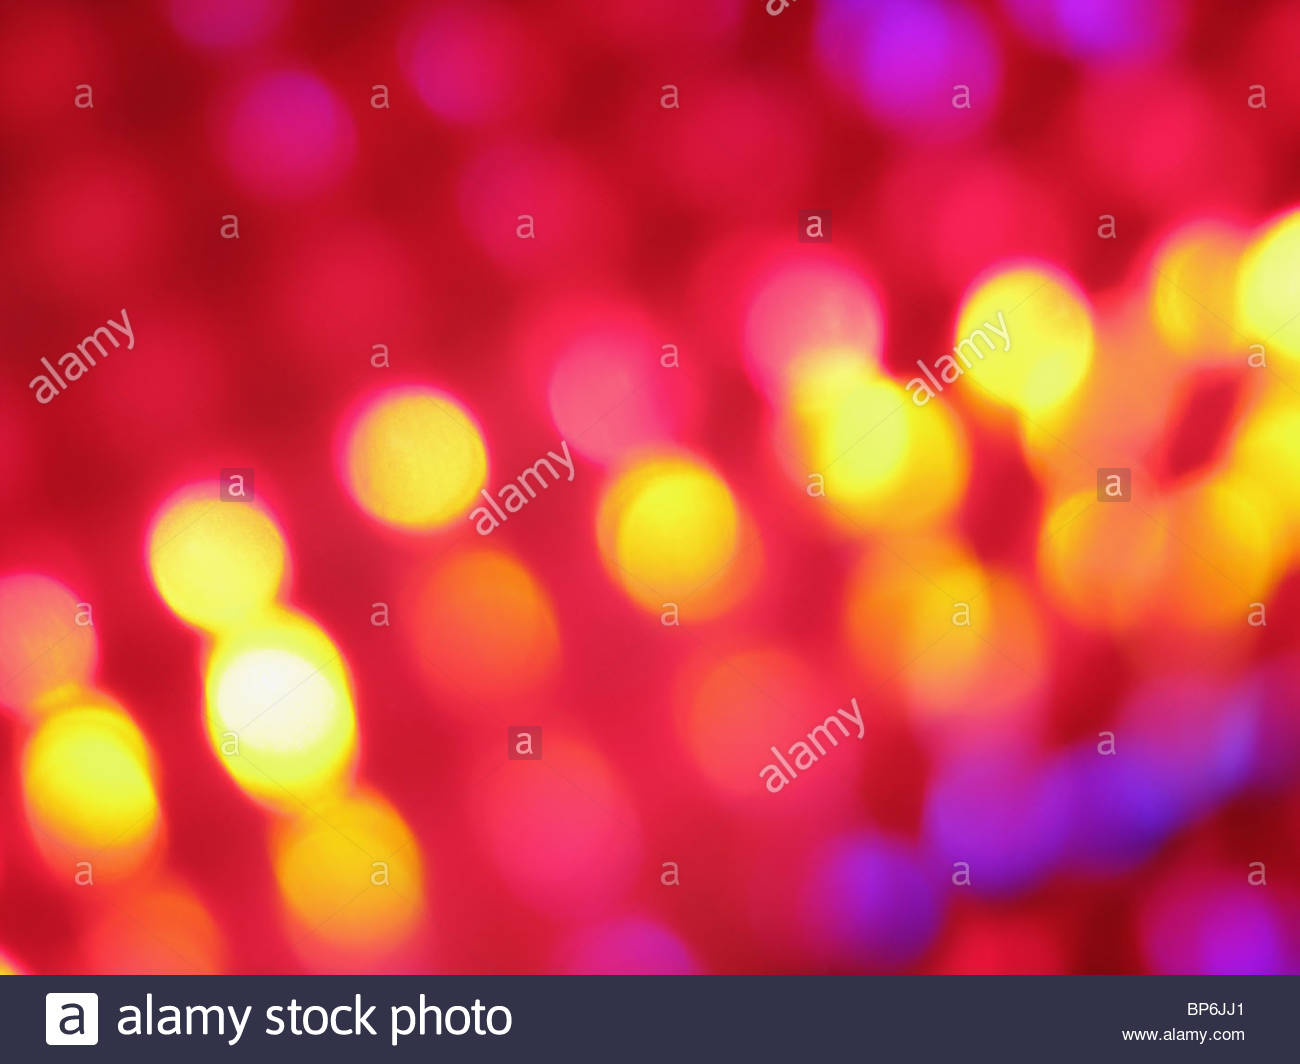 Une image abstraite de violet, rose et jaune s'allume Photo Stock